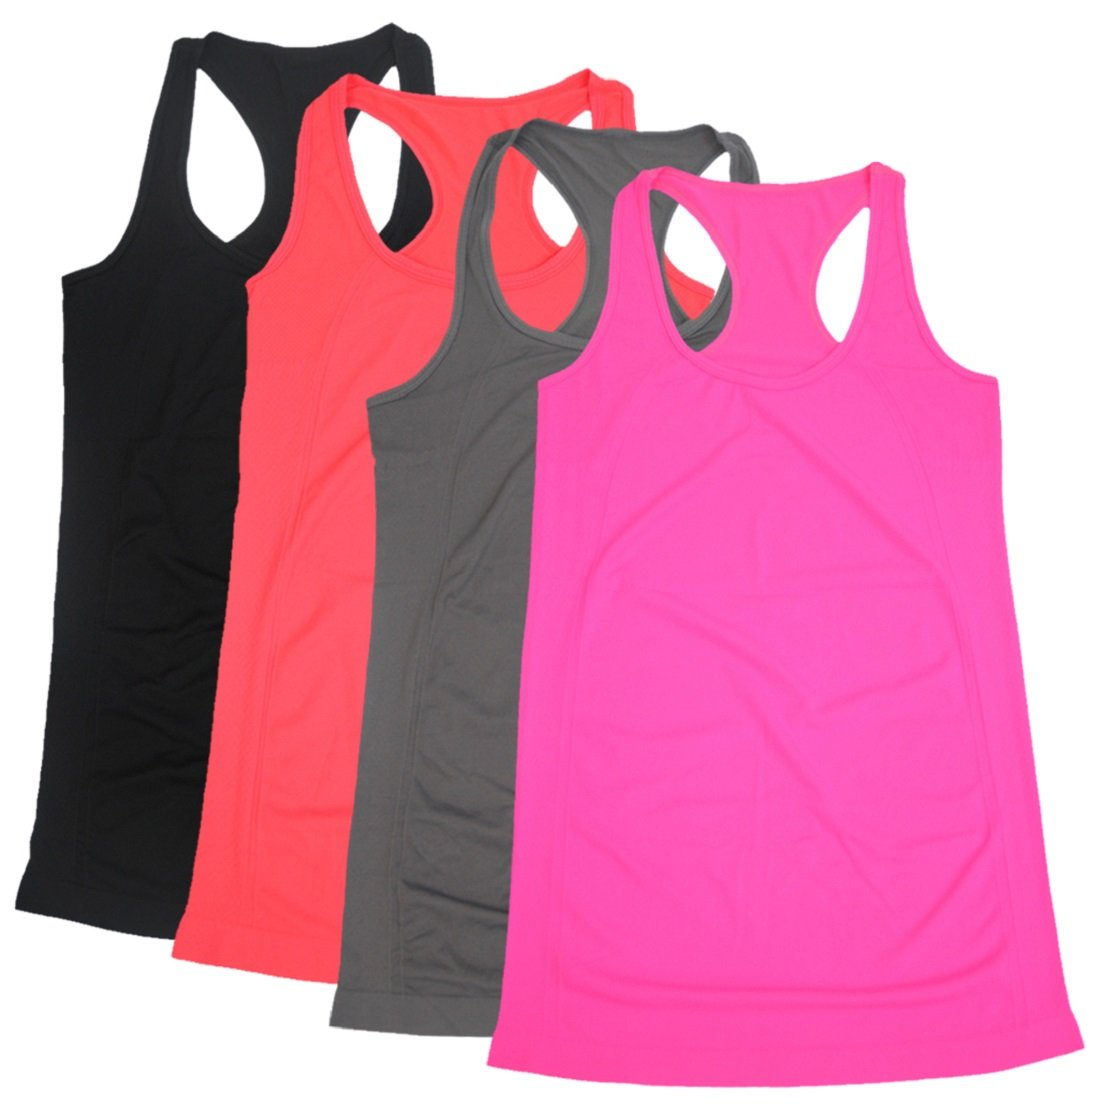 BollyQueena Women Tanks, Women's Workout Tanks Racerback Tank Tops S Multicoloured